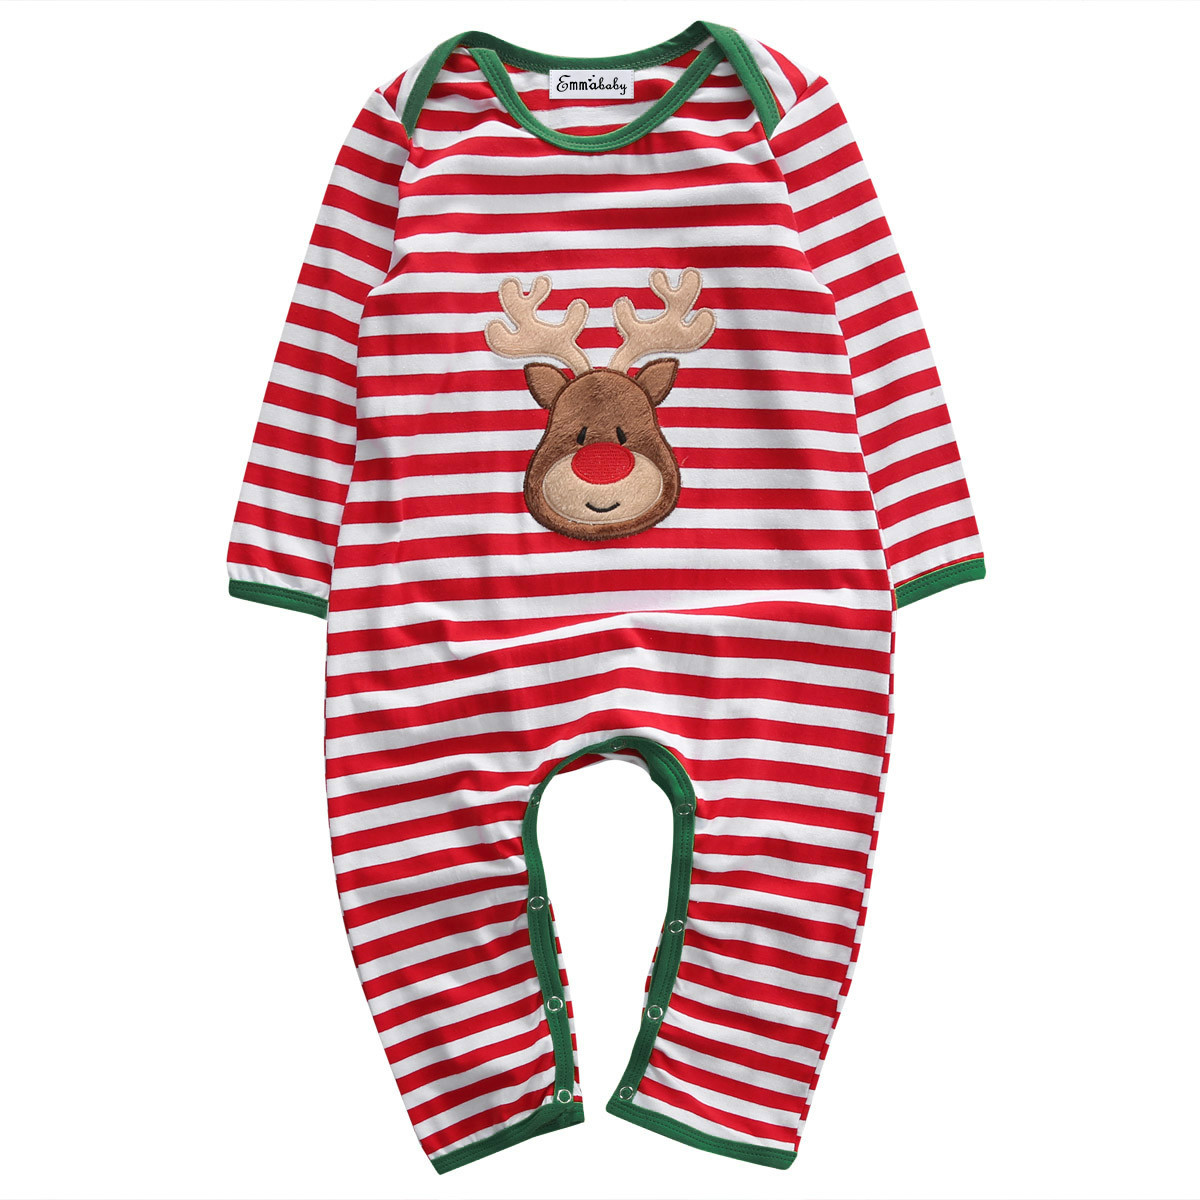 Emmababy Newborn Baby Christmas Pajamas Unisex Infant Baby Boy Girls Clothes Playsuit   Romper   Pullover Costume Outfit Gift